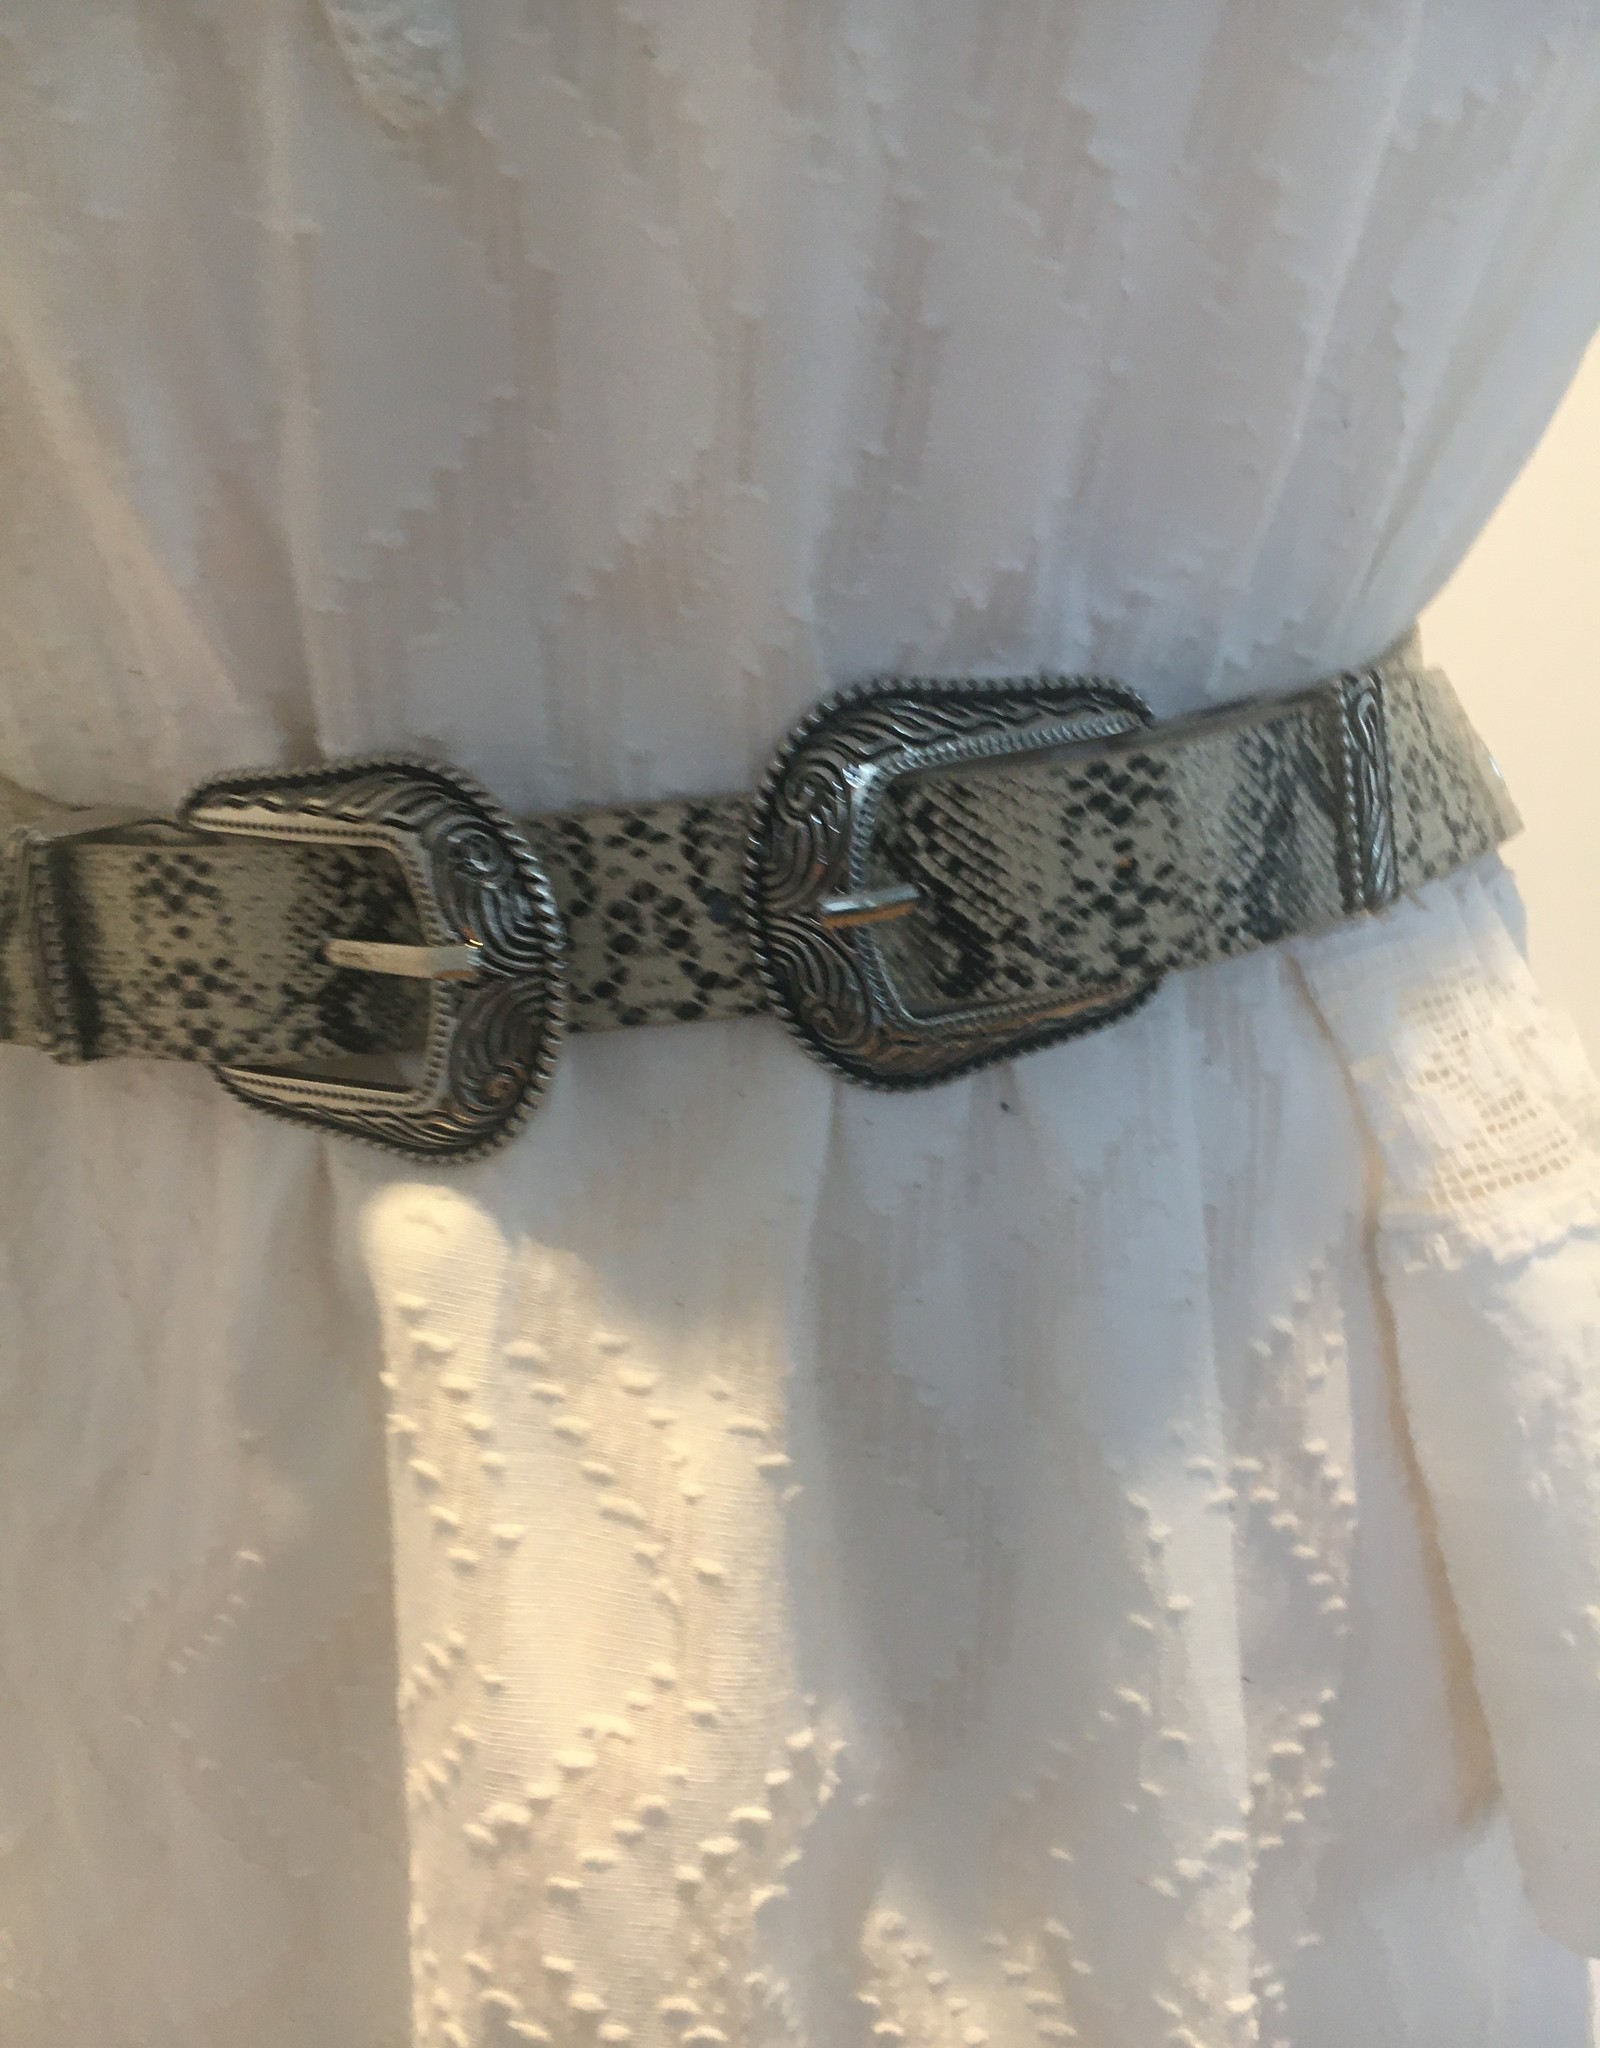 Belt, cowboystyle, snake print with 2 buckles